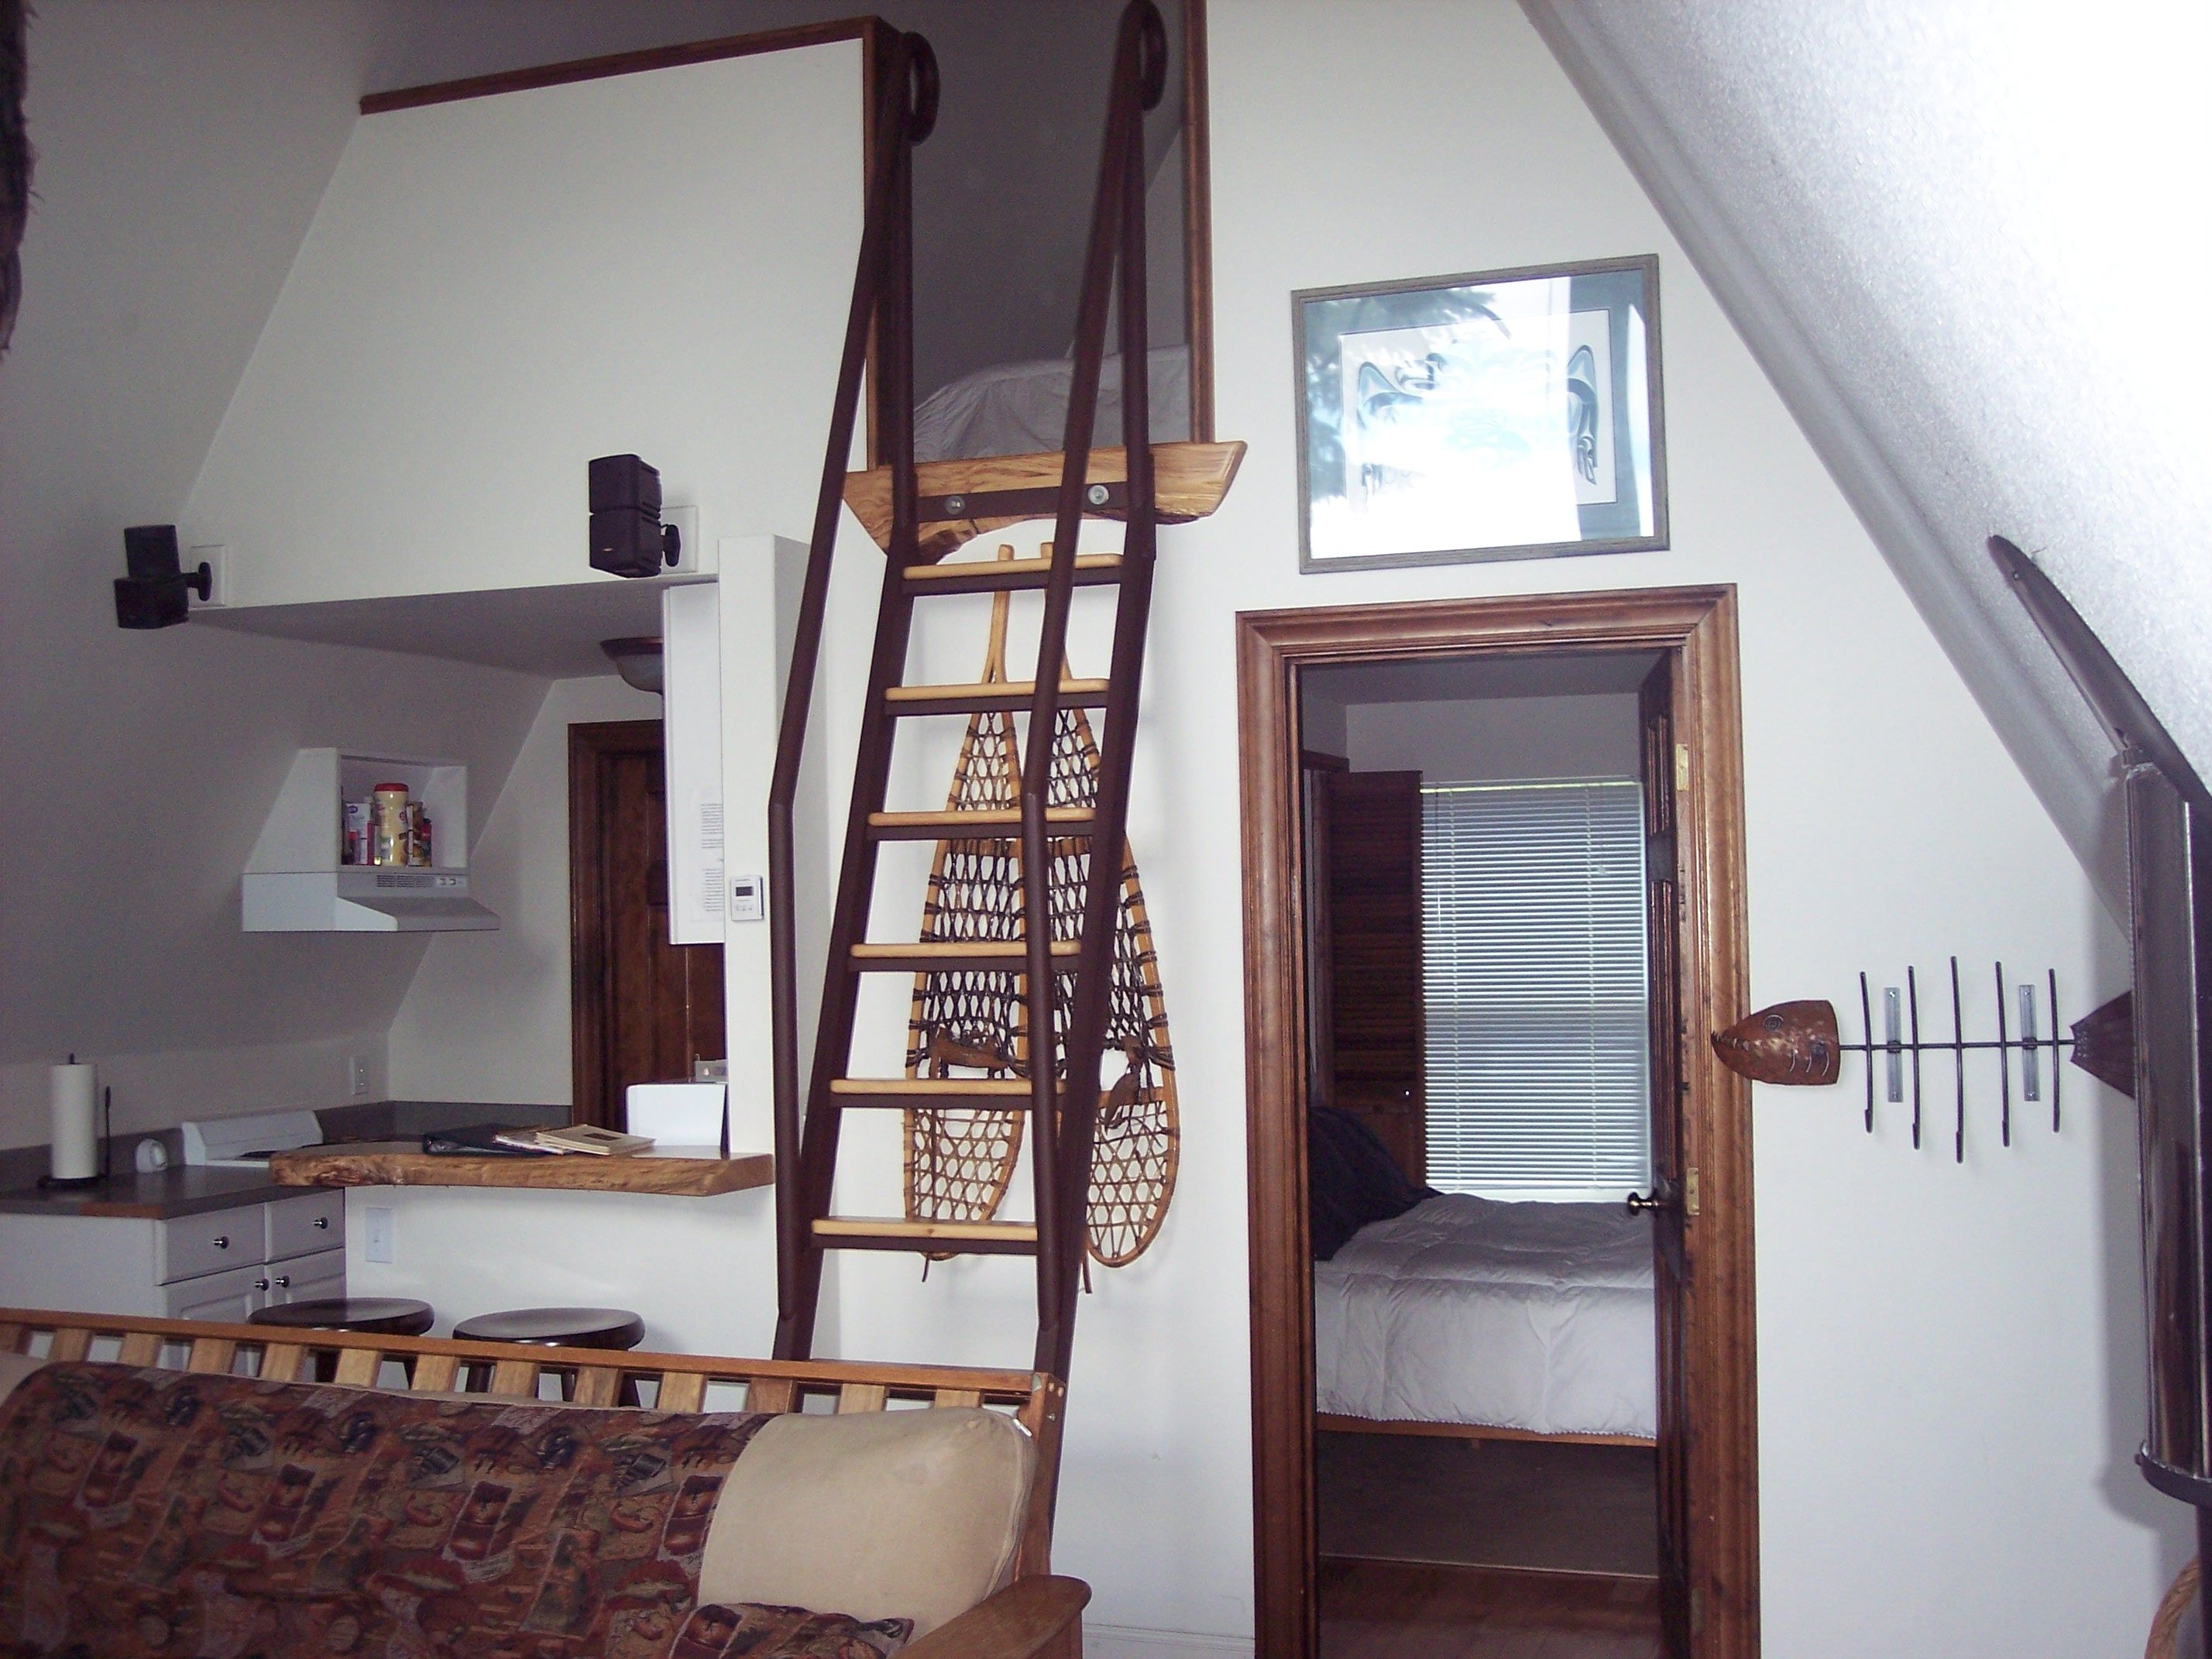 Loft access stairs and ladders san francisco by royo architects - Ship Ladder The Perfect Stairs For Getting Up To A Cabin Loft